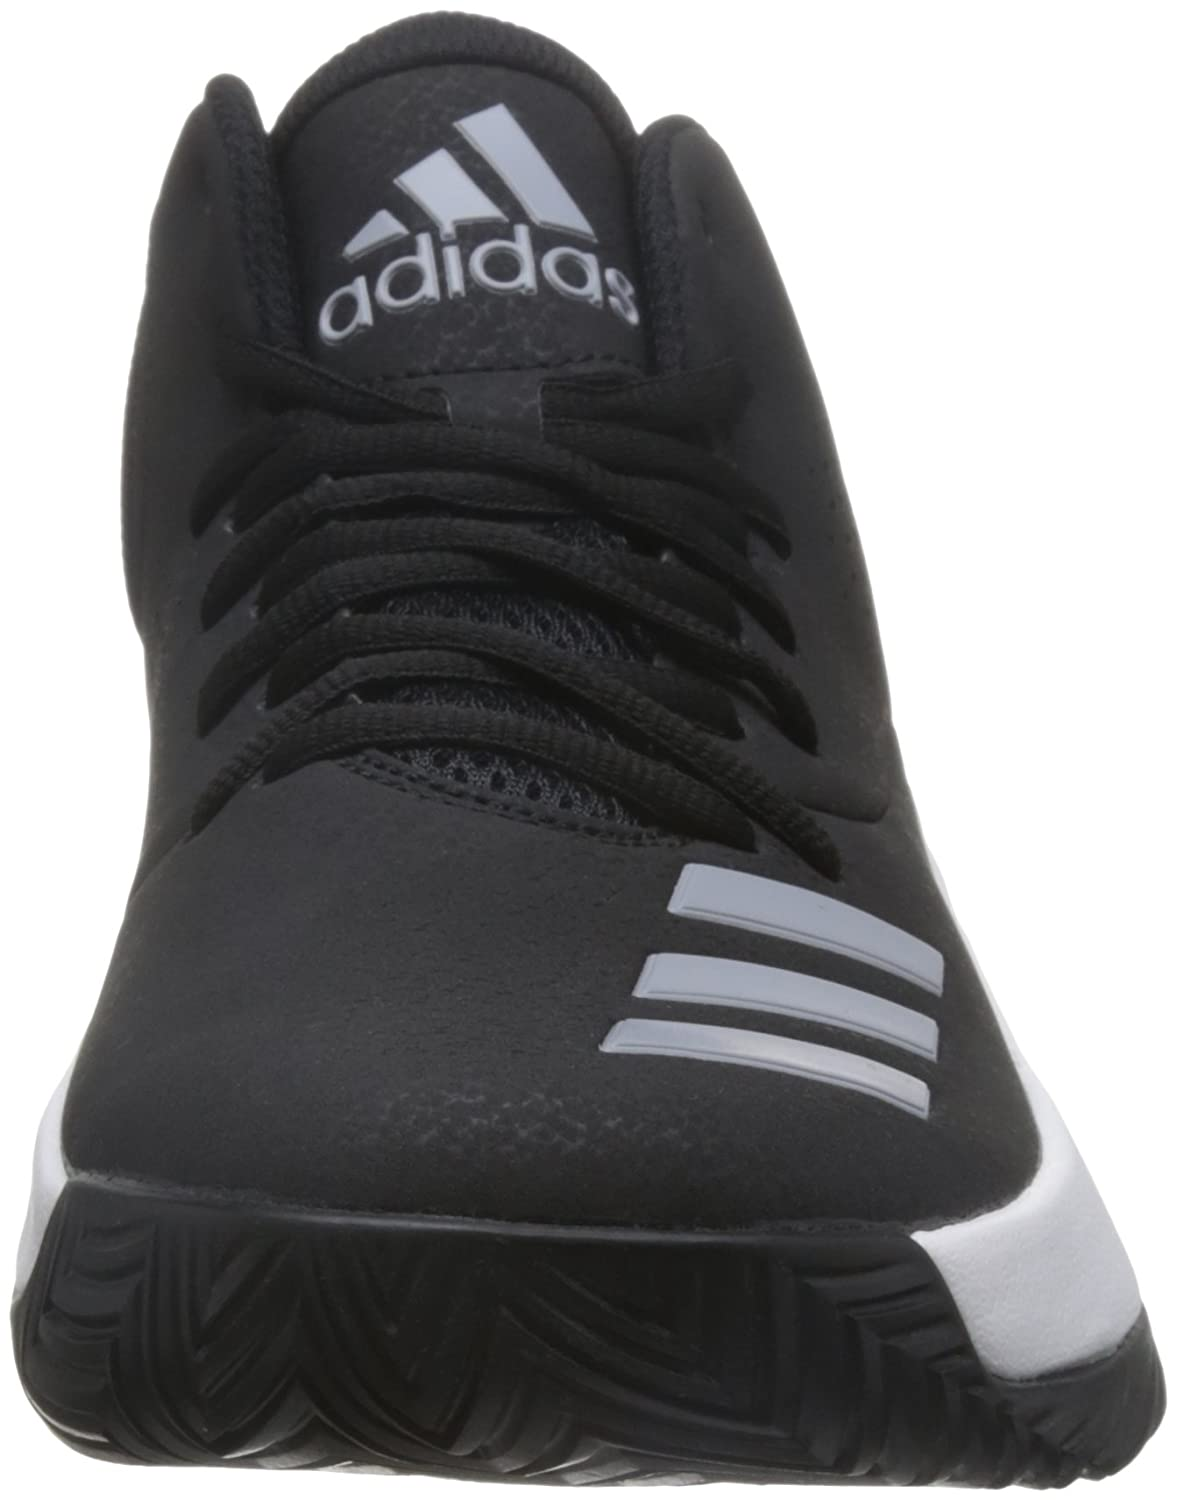 newest collection 40447 b594e adidas Court Fury 2017, Chaussures de Basketball Homme Amazon.fr  Chaussures et Sacs